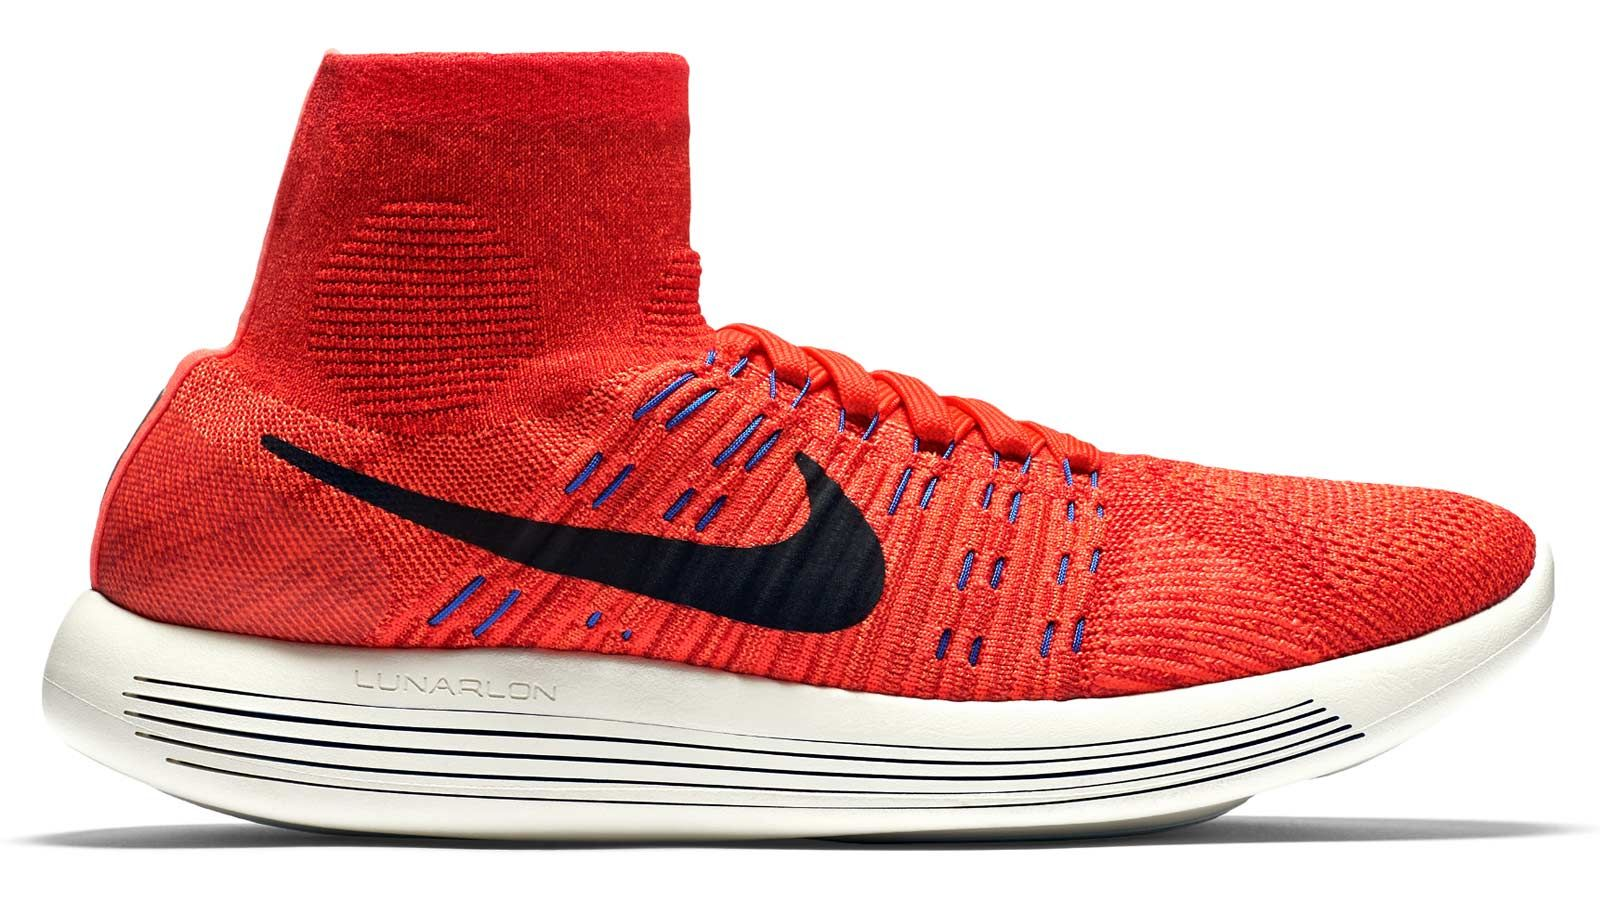 The all new Nike LunarEpic running shoes introduce the